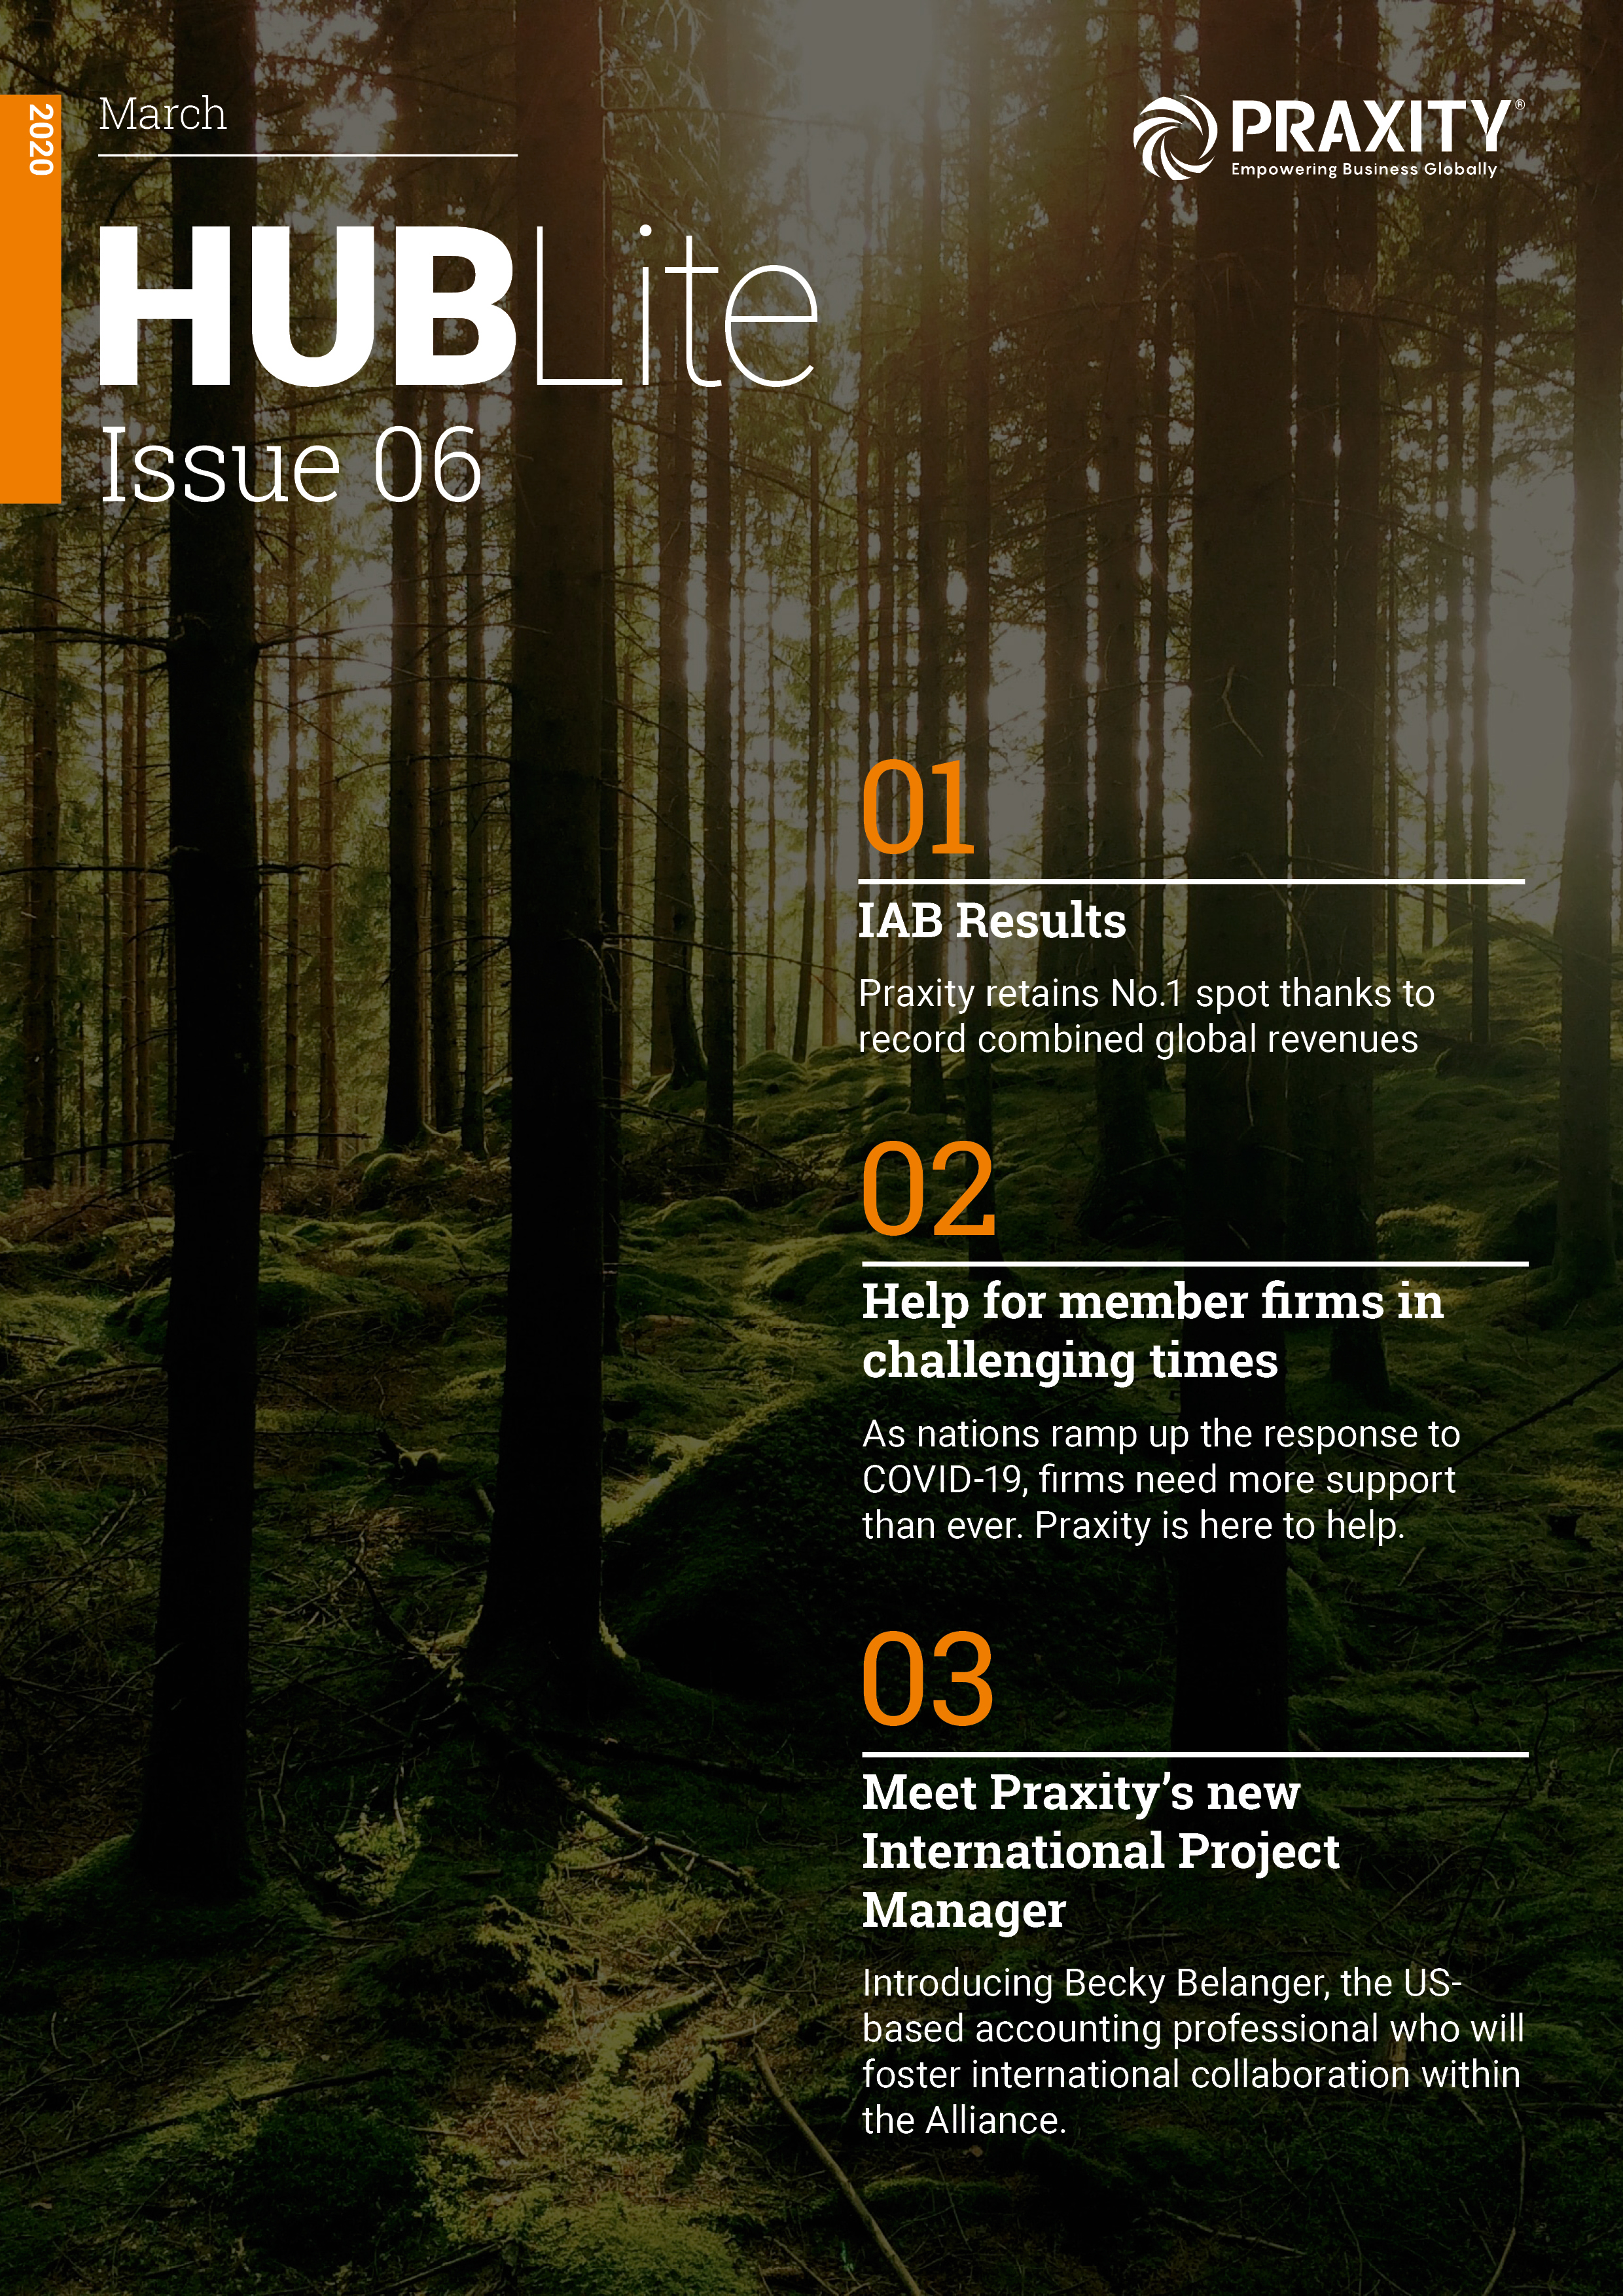 HUB Lite Issue 06